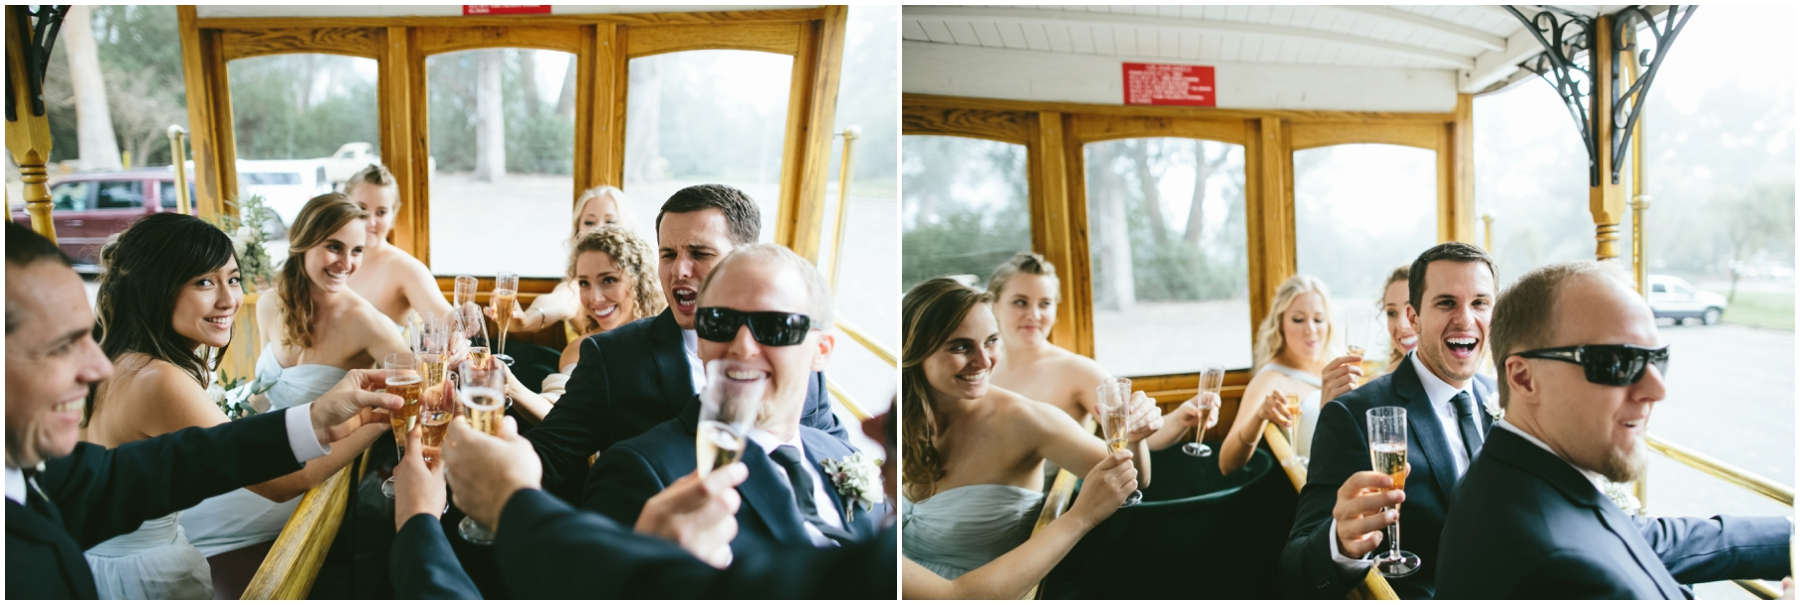 Emily+Paul-WEDDING_KellyBoitanoPhotography_0108